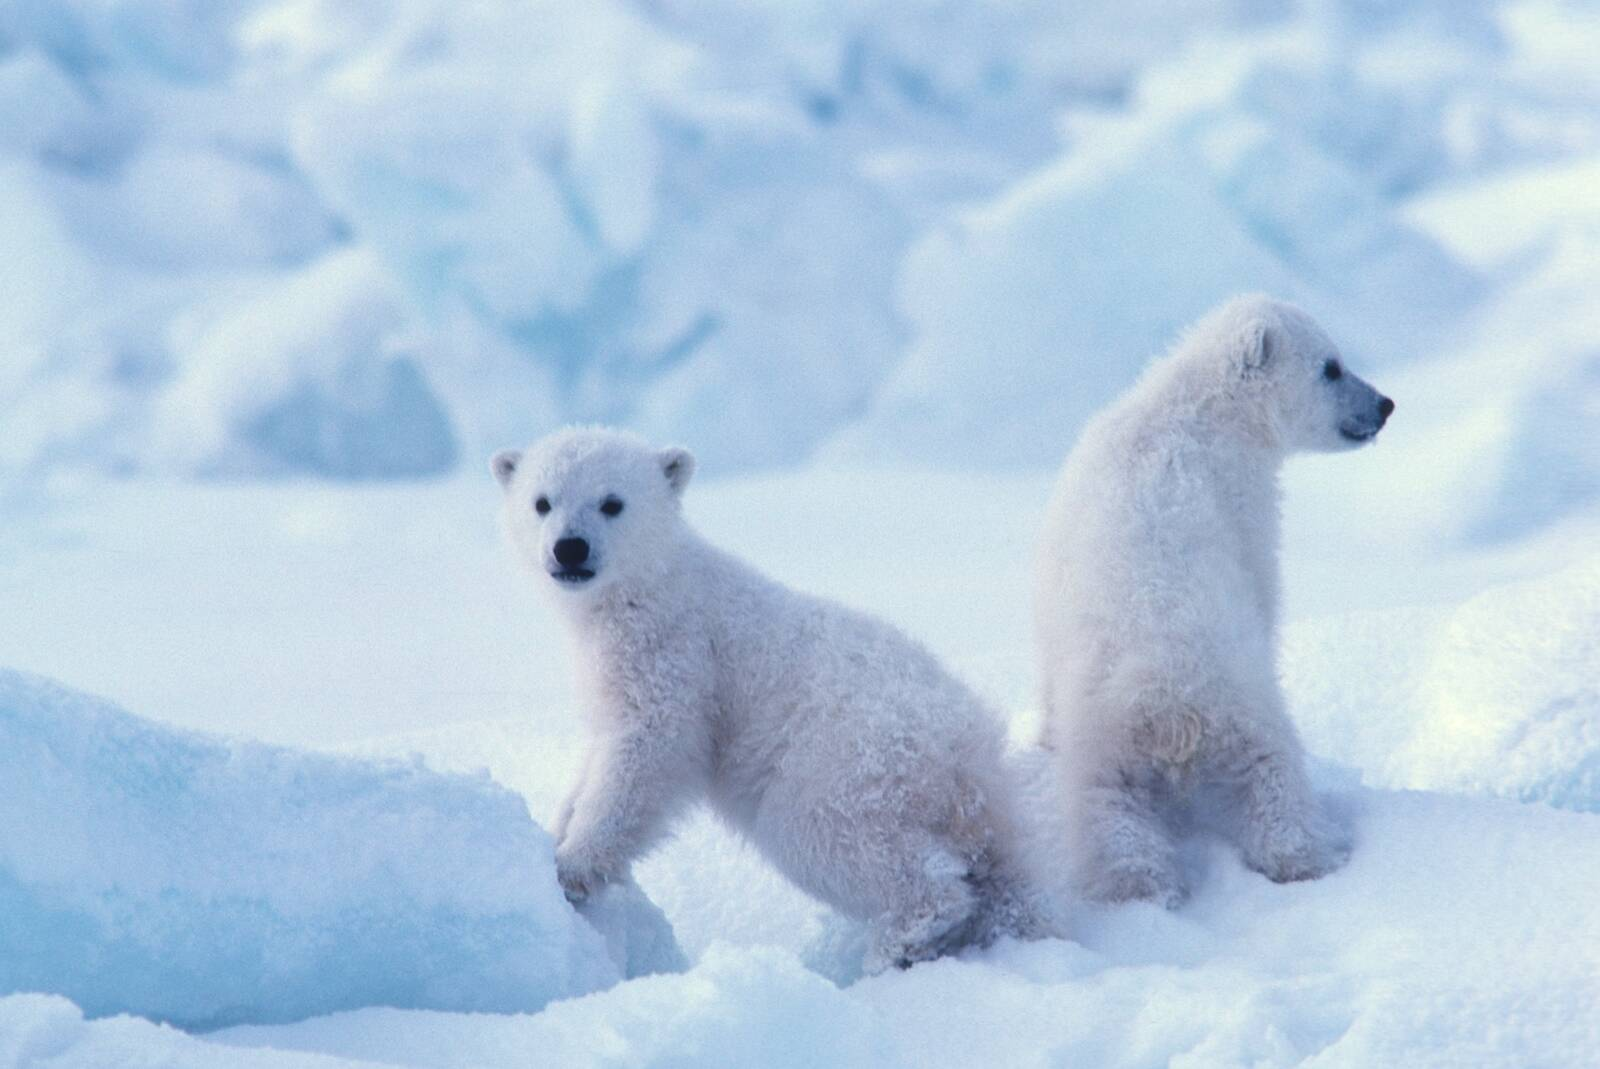 Polar bear cubs spend the first two months of their lives in their dens. A new study found that mothers are unlikely to evacuate their den with their cubs—even if their lives are threatened. Credit: Steven C. Amstrup/Polar Bears International